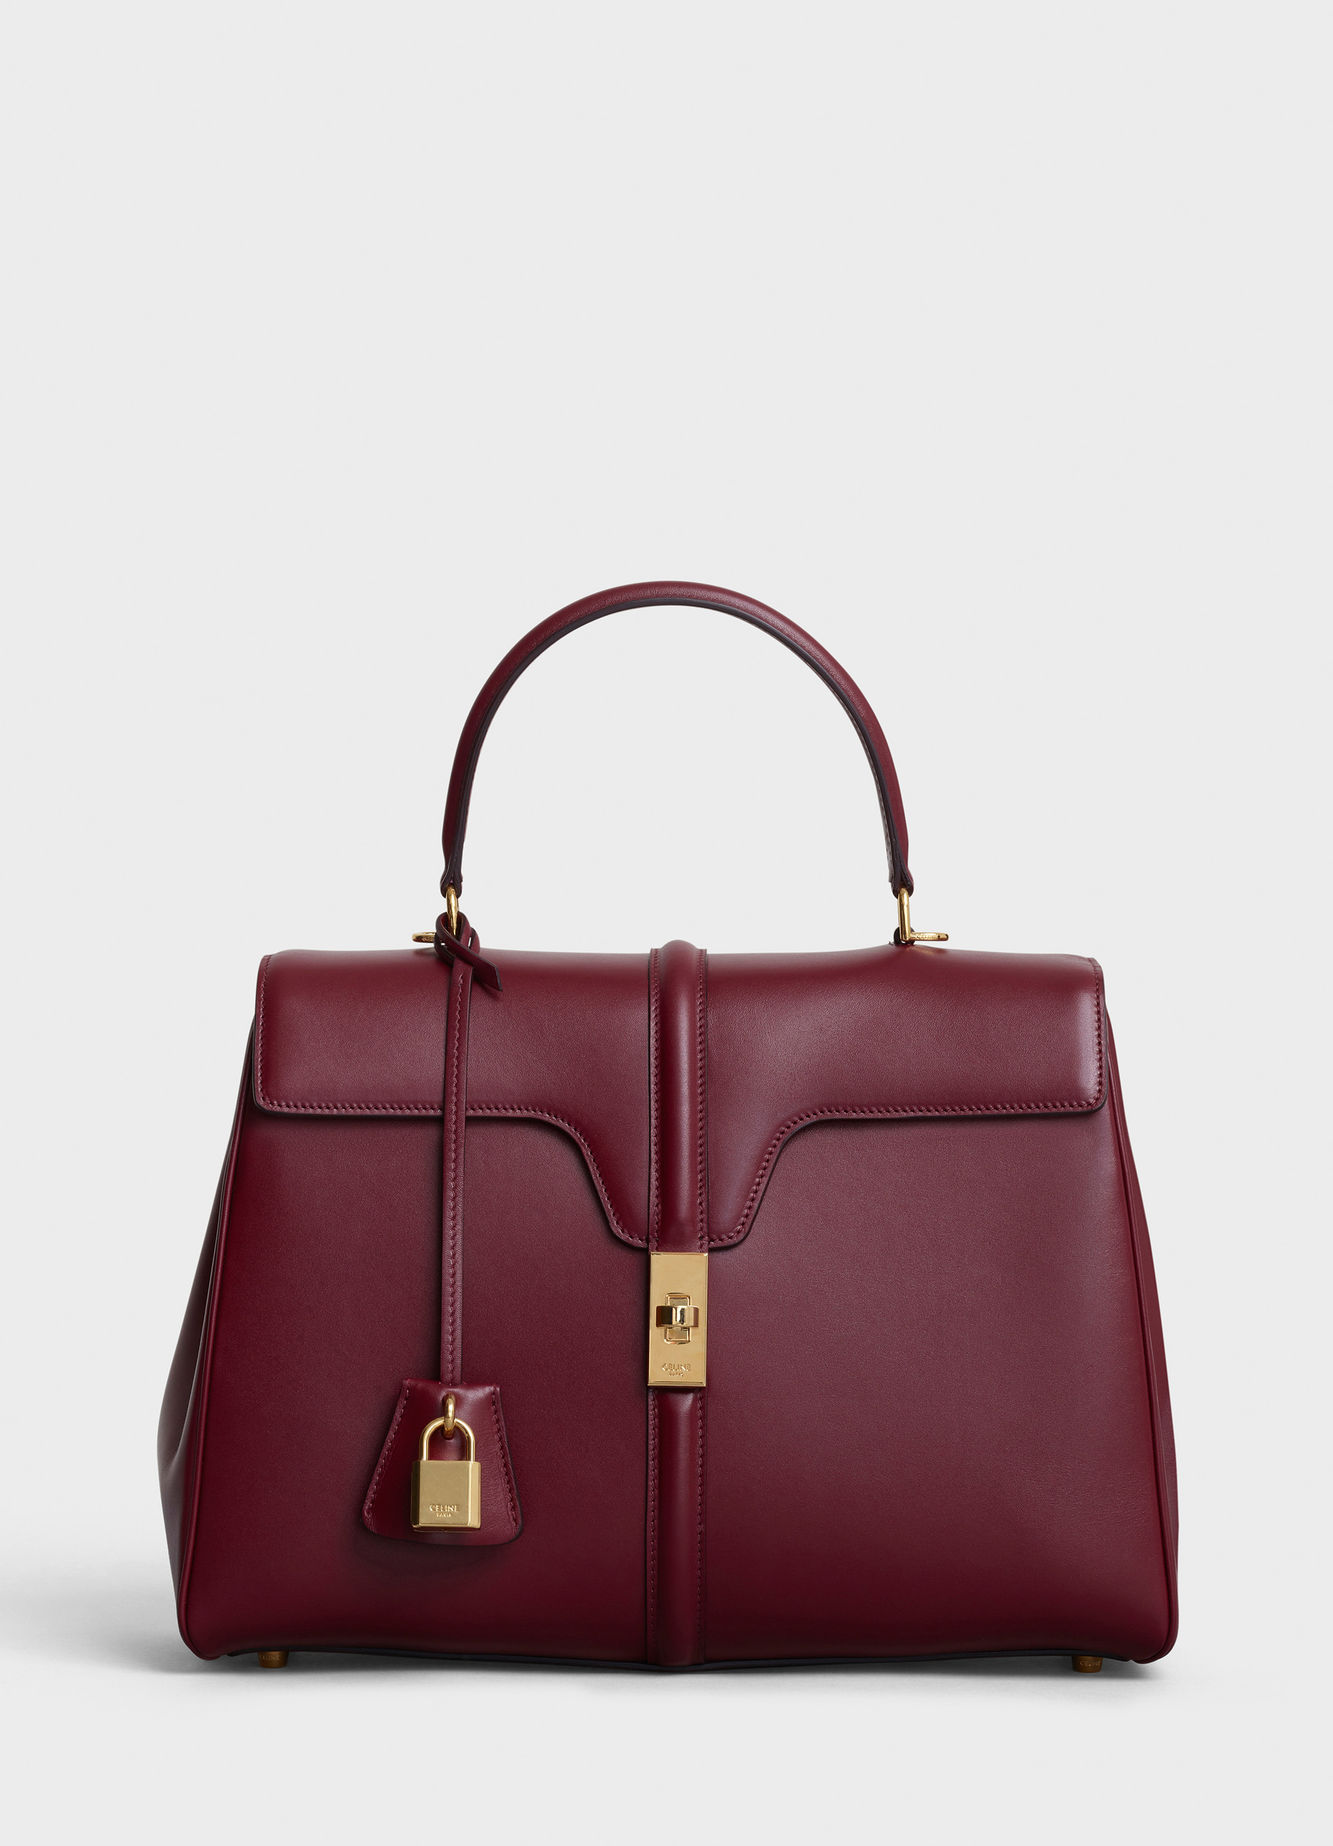 CELINE MEDIUM 16 BAG IN SATINATED CALFSKIN 187373 LIGHT BURGUNDY